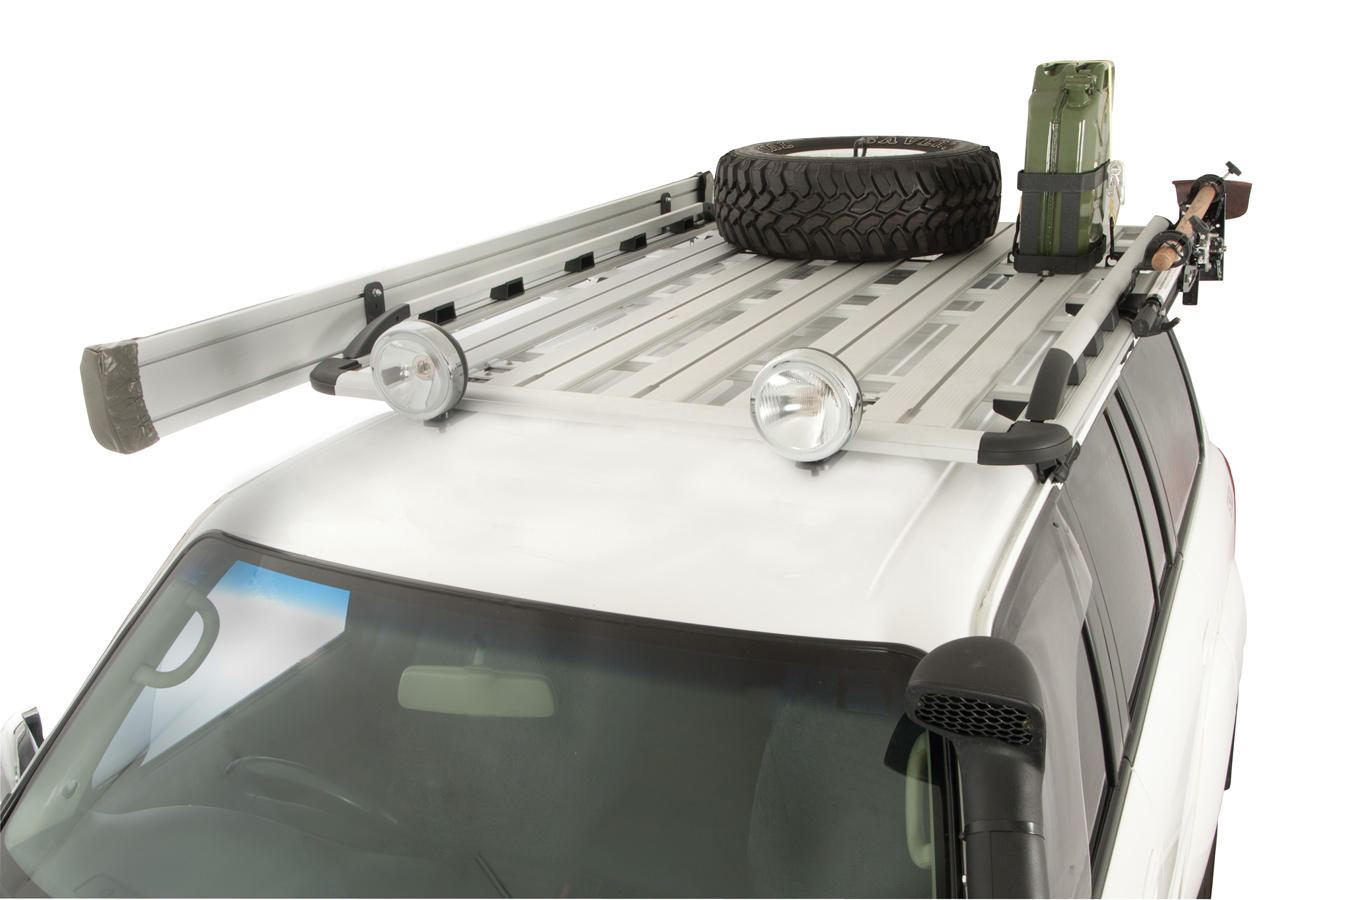 Mitsubishi Pajero Sport also Rhino Aluminium Trades Full Roof Rack Iveco Daily 2015 Onwards also Watch further Rhino Rack Alloy Tray Cargo Basket Accessories likewise Polaris Ranger 800 Front Rack. on rhino rack basket